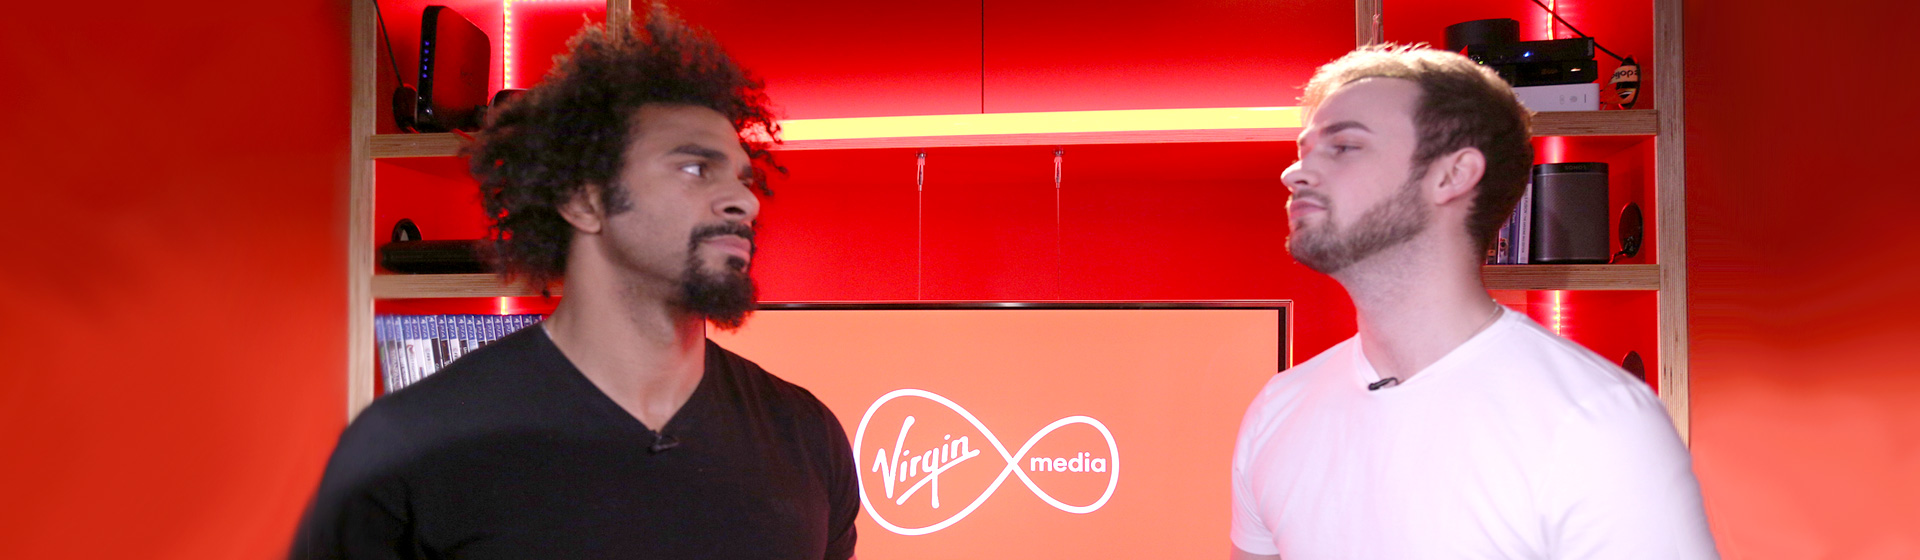 VIVID Gamer Challenge: Exclusive David Haye & Ali-A Q&A